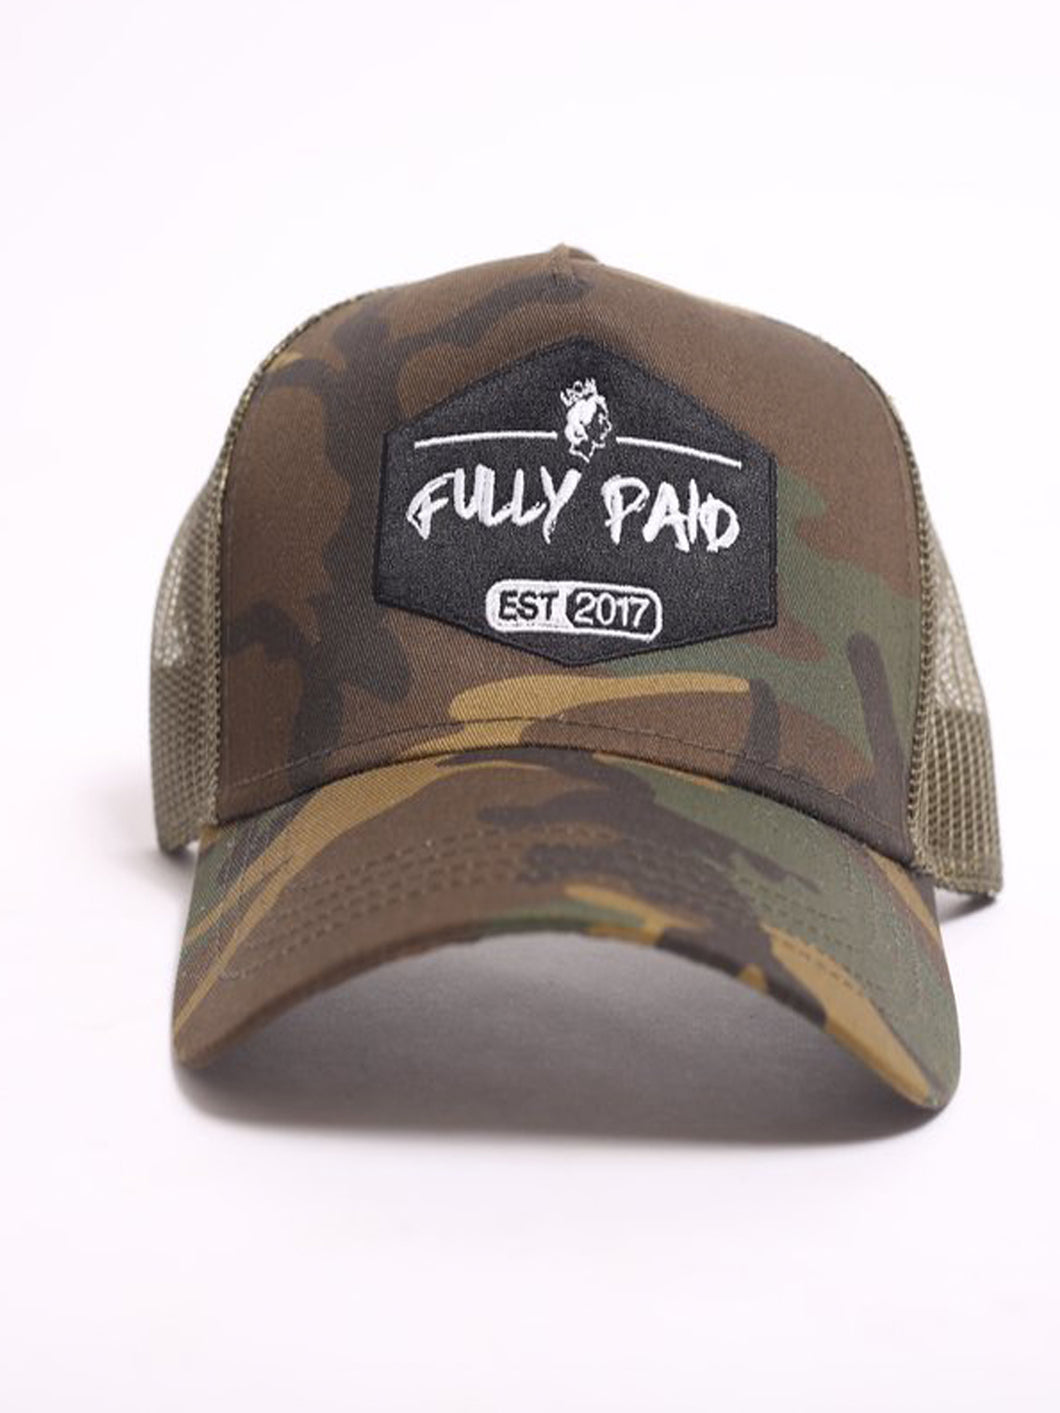 Fully Paid Classic Logo Trucker Cap - Camo